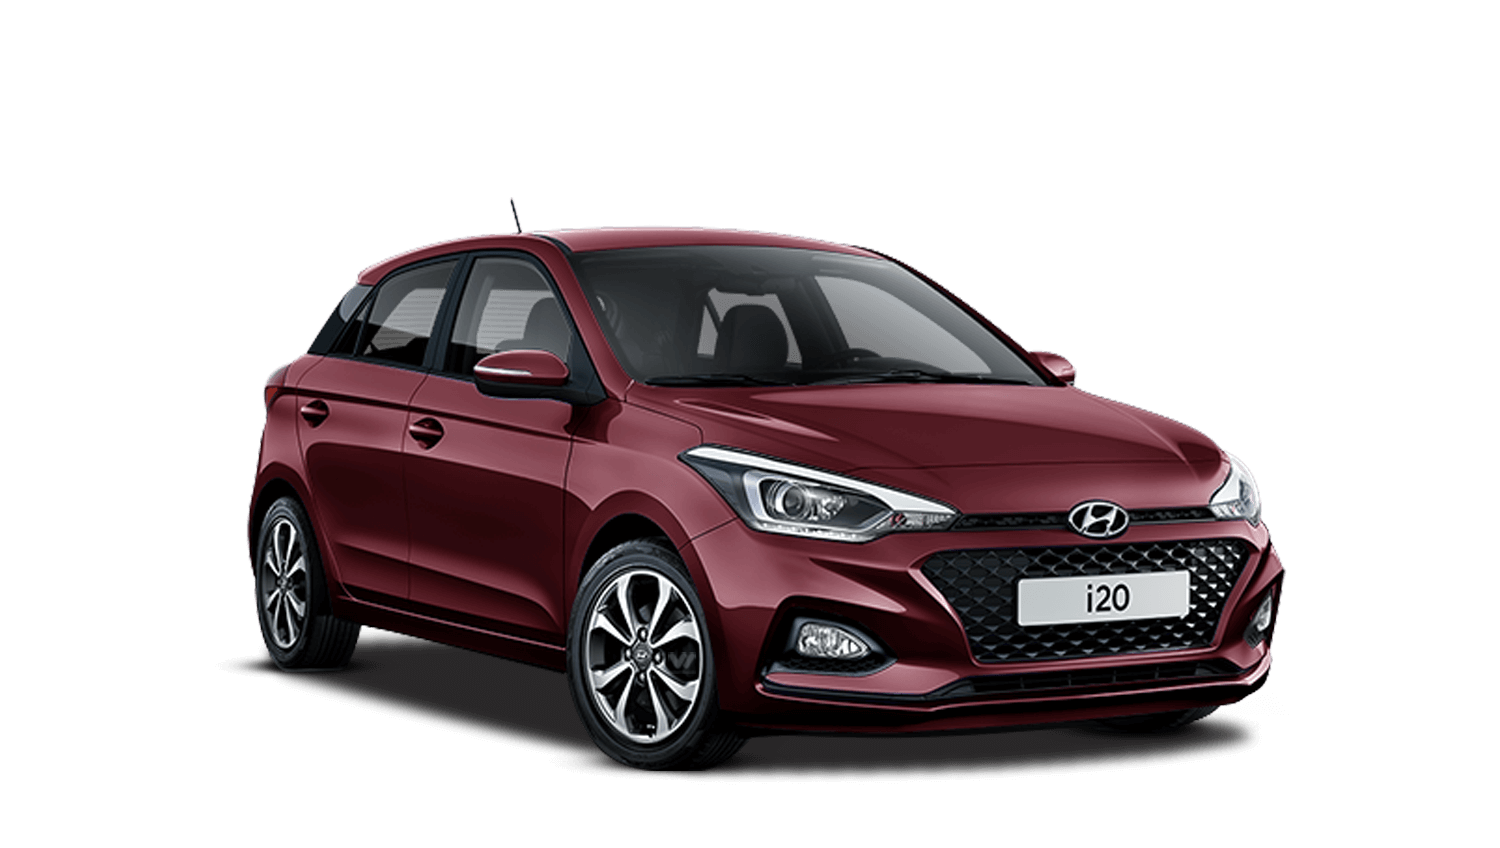 Passion Red Hyundai i20